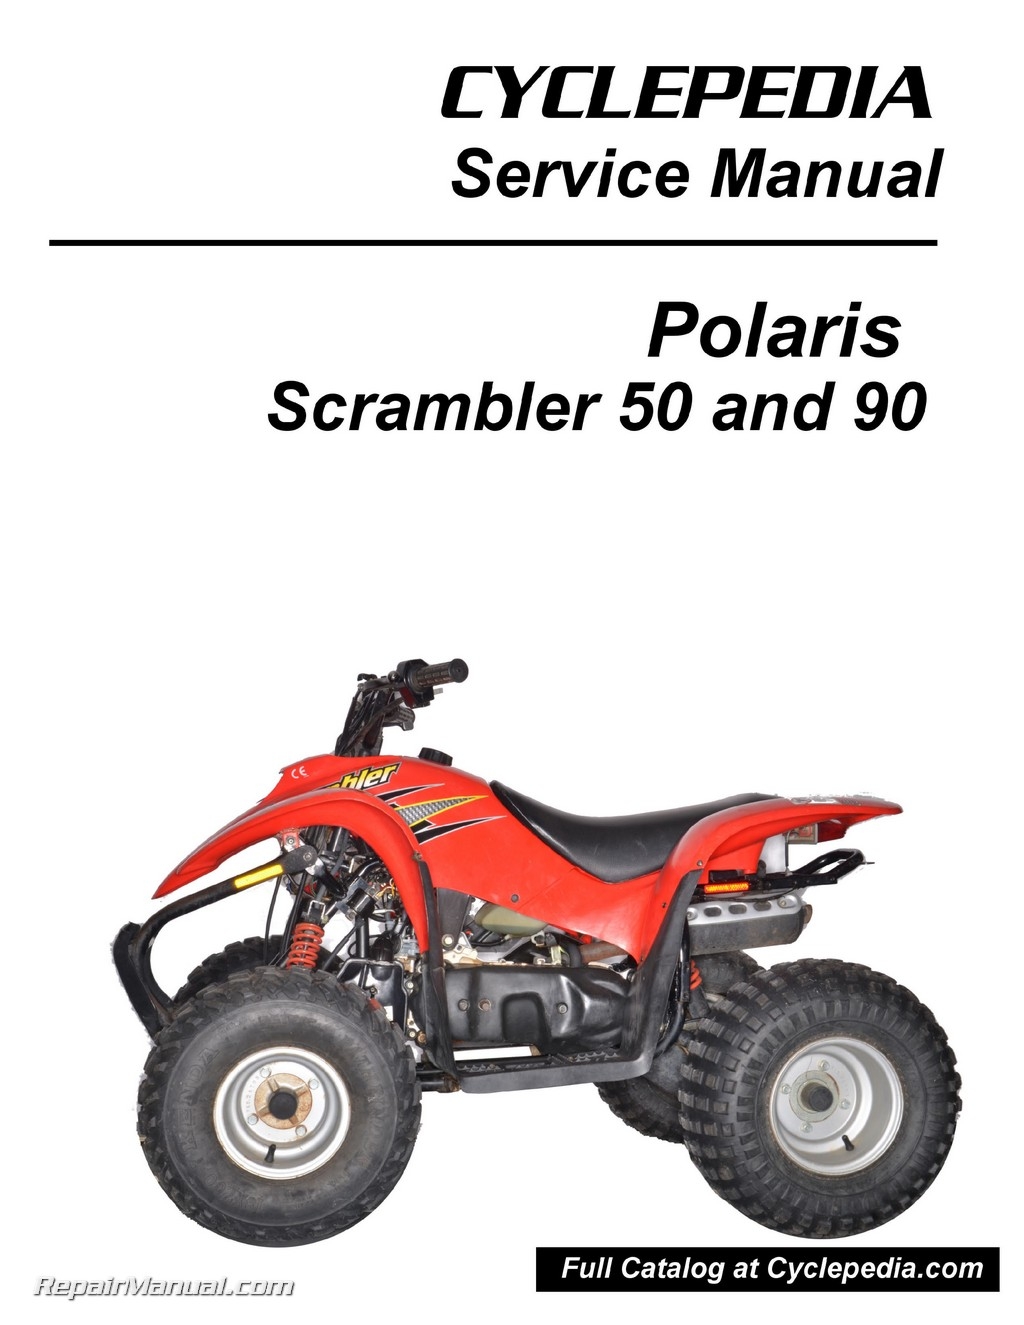 polaris 50cc 90cc scrambler atv print service manual by cyclepedia polaris scrambler 90 polaris scrambler 50 wiring schematic